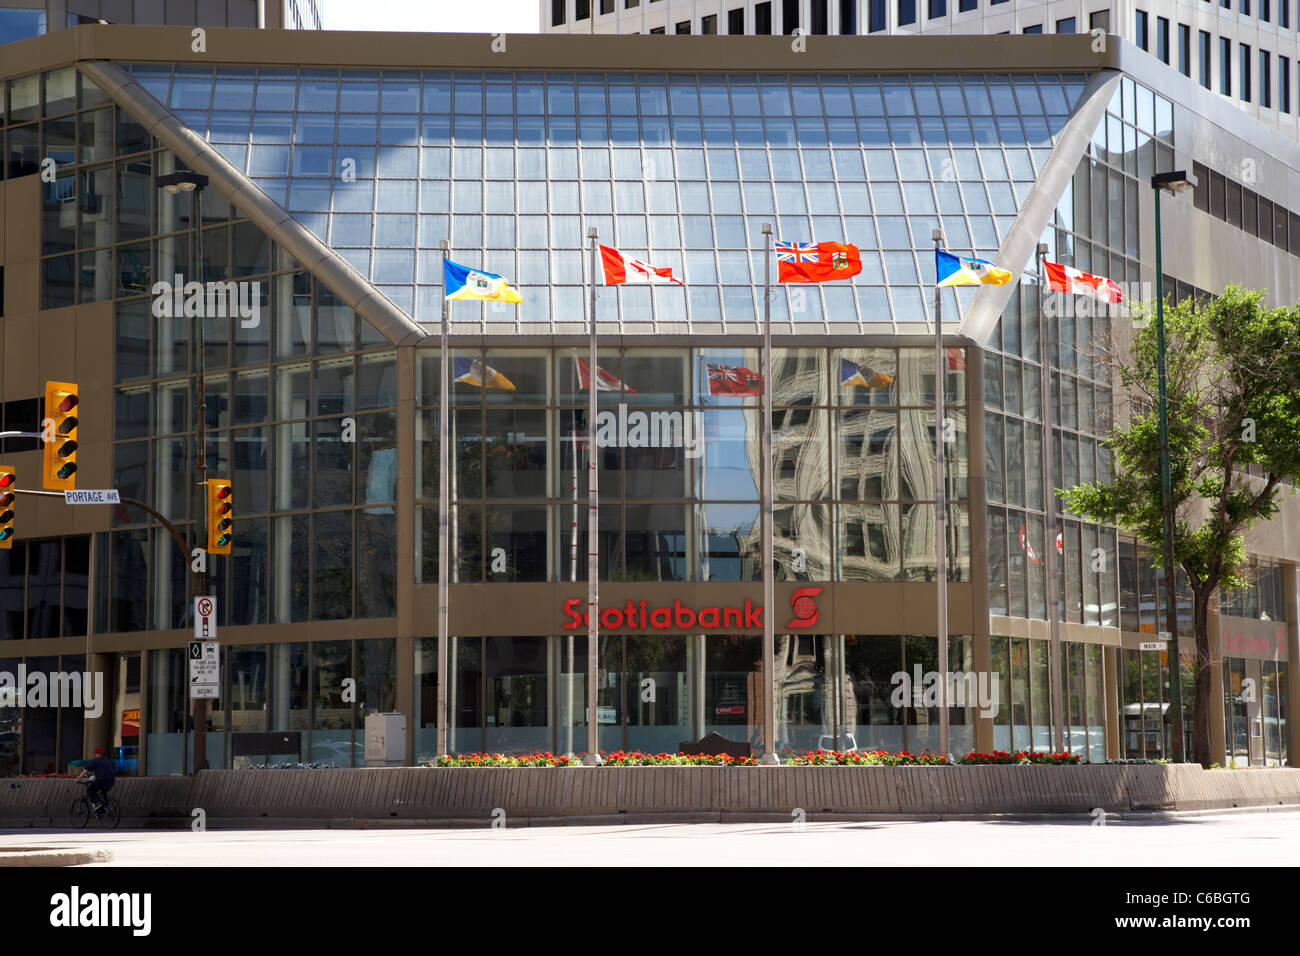 scotiabank building entance on portage and main downtown winnipeg manitoba canada - Stock Image